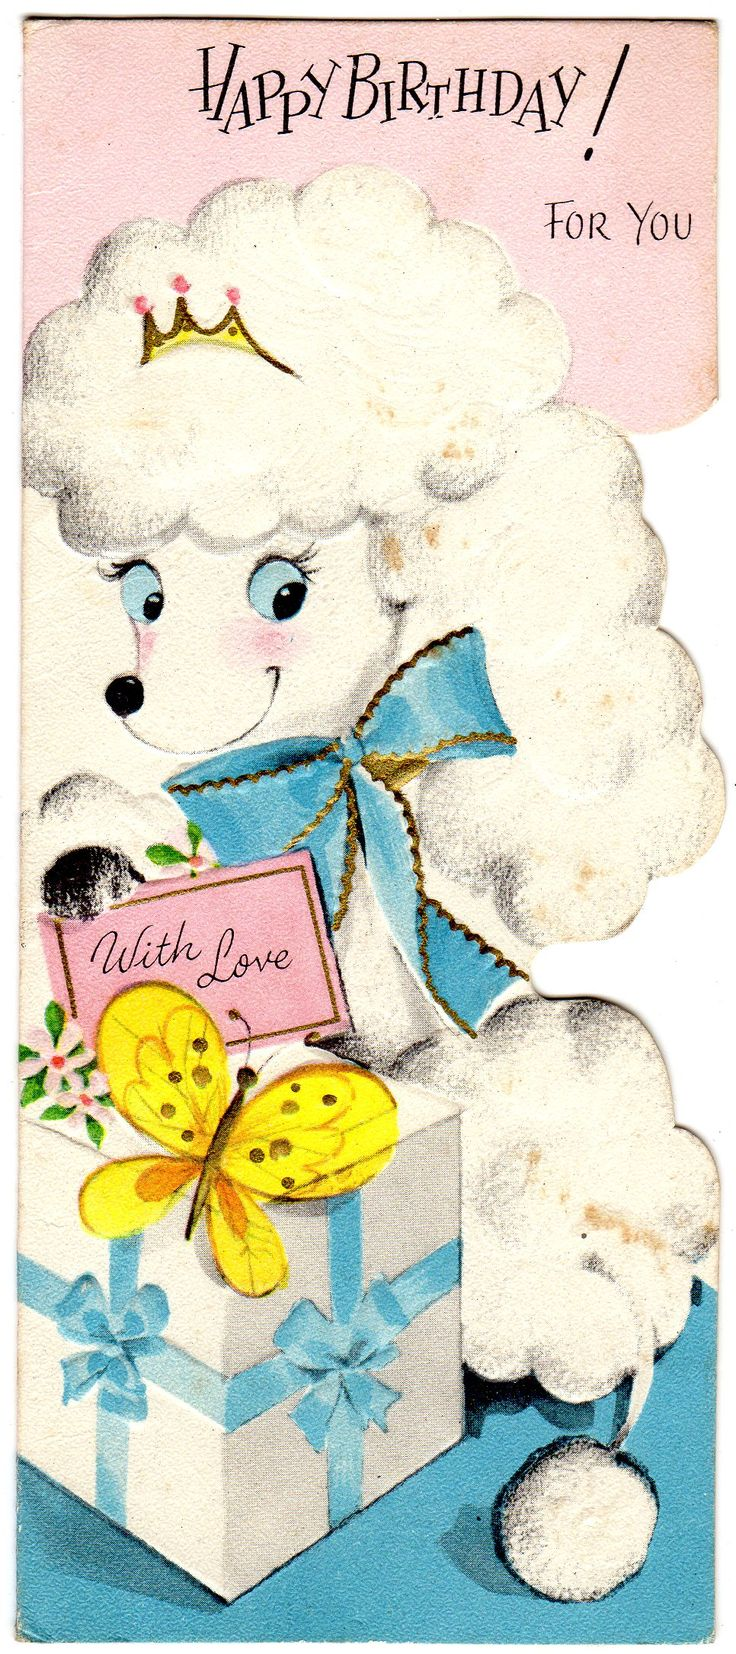 84 Best Happy Birthday 3 Images On Pinterest Vintage Cards